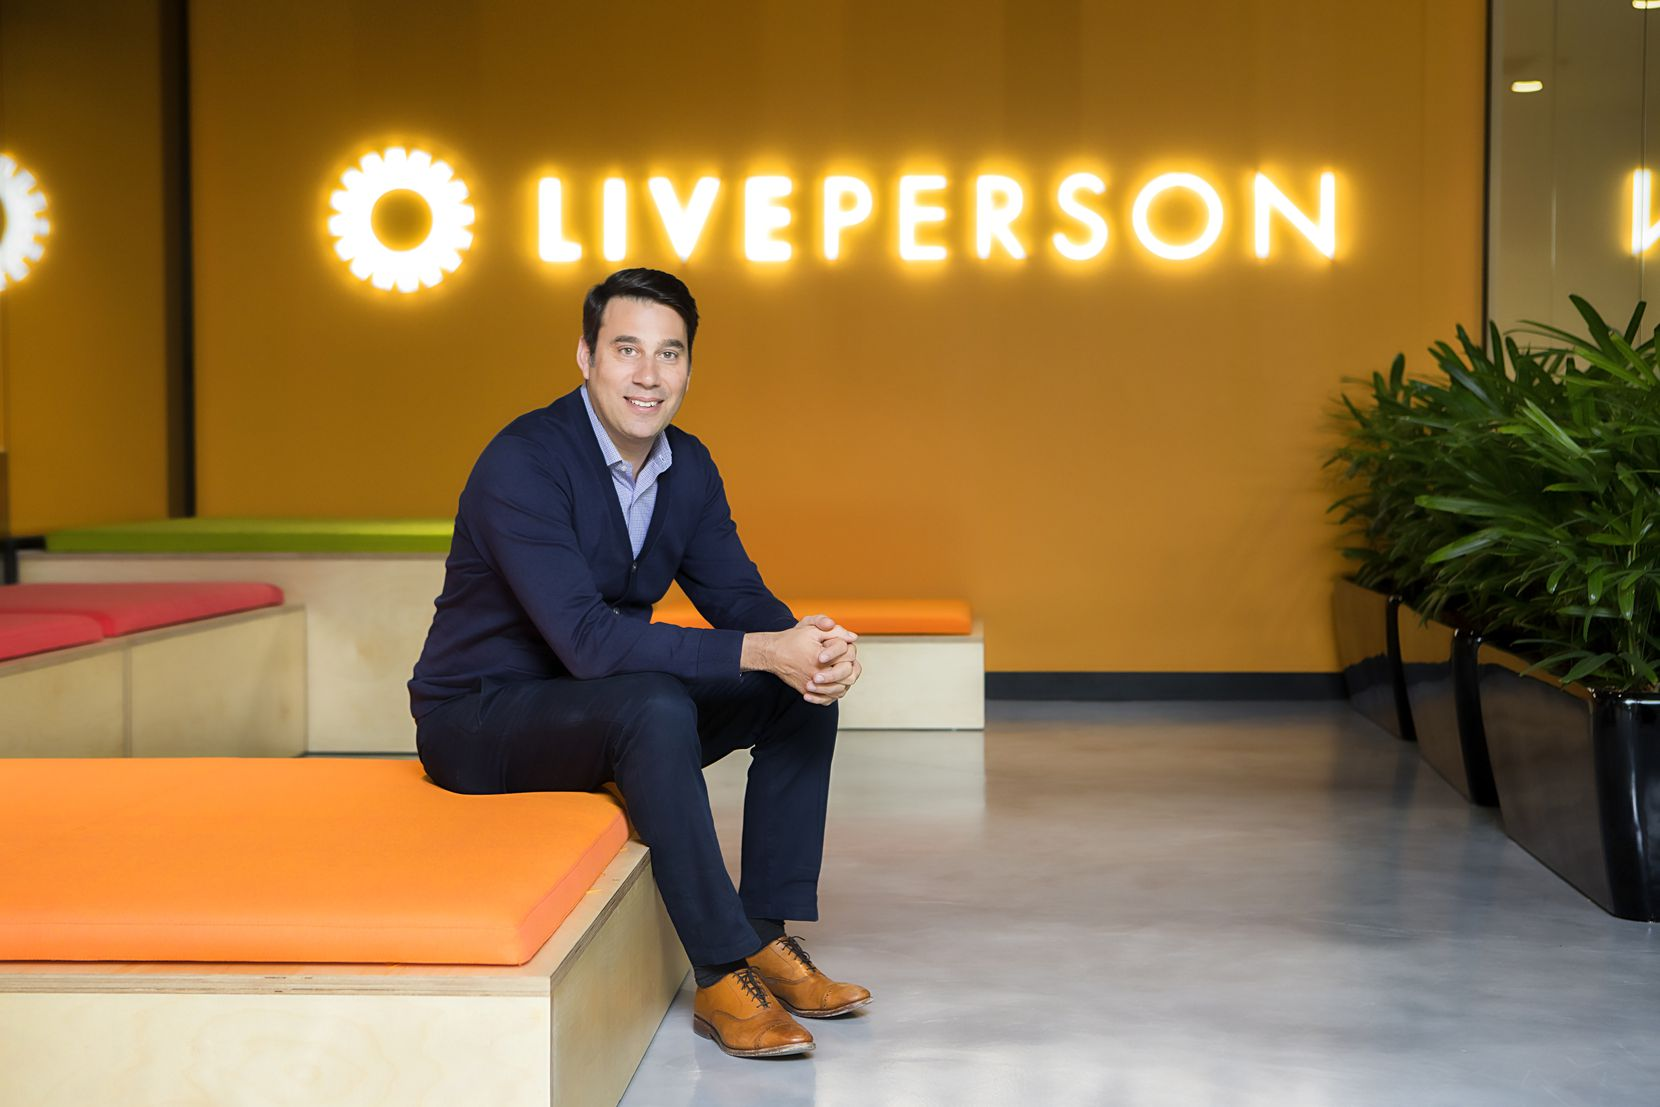 LivePerson founder and CEO Robert LoCascio said Conversable will help the New York-based company gain clients in a promising business segment — restaurants and hospitality. He said the company recently worked with Aramark on a pilot that allowed fans at the Philadelphia Phillies game to order a beer to their seat by sending a message.